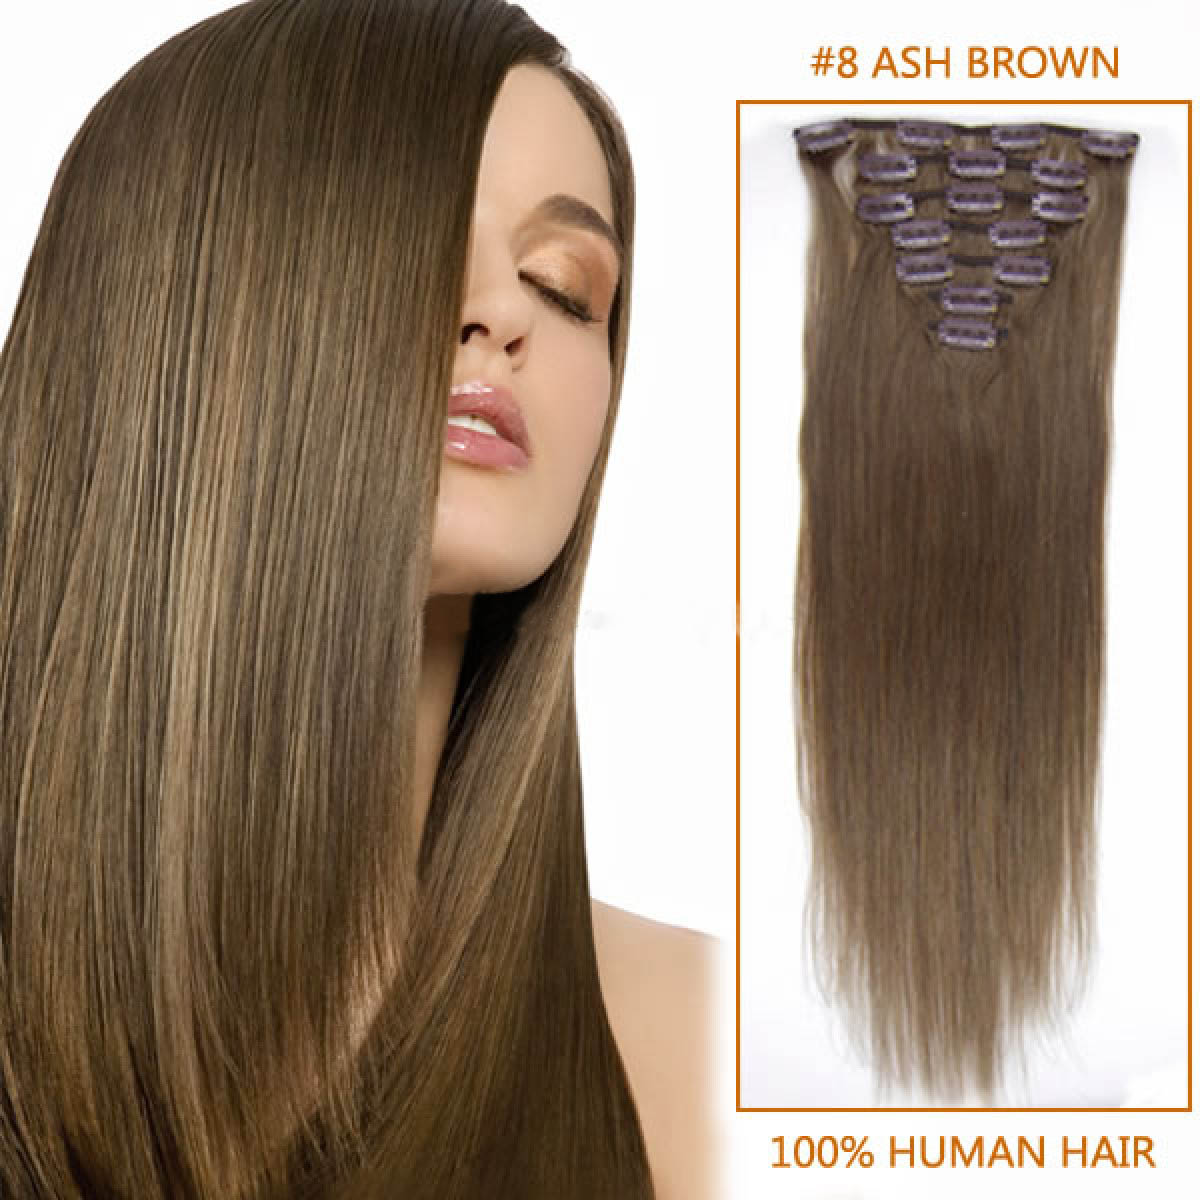 18 Inch 8 Ash Brown Clip In Human Hair Extensions 8pcs